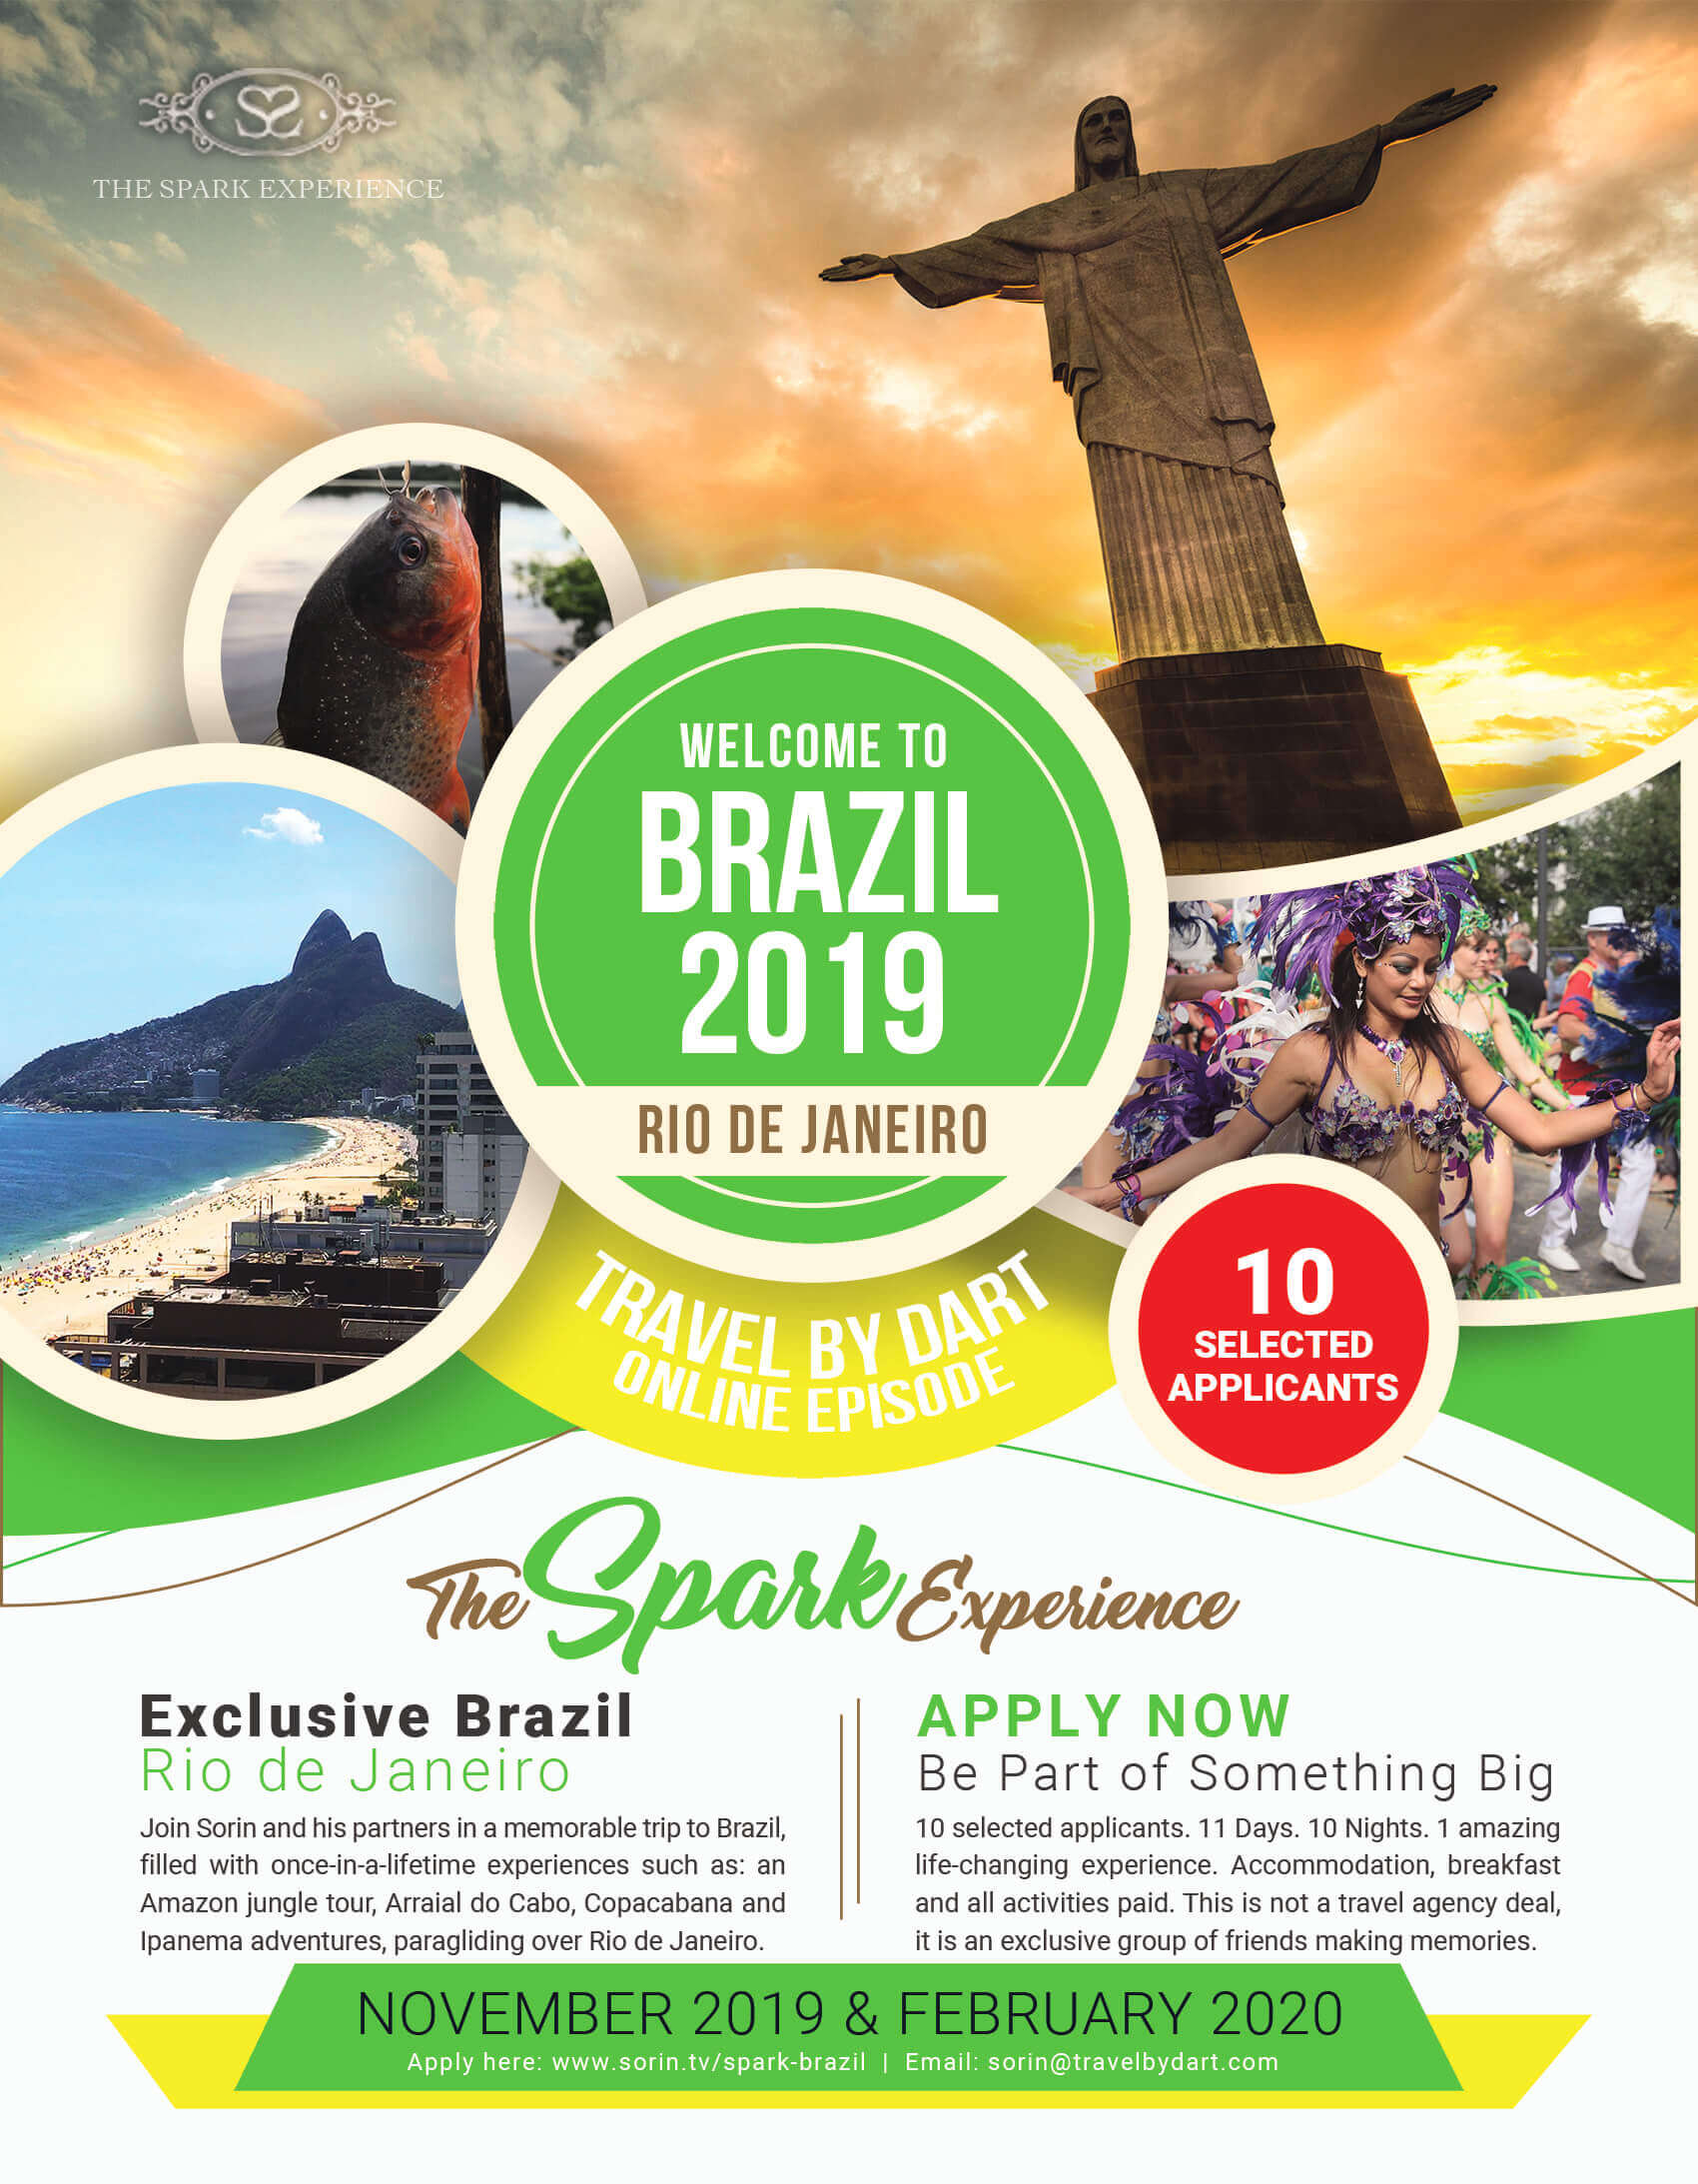 Visit Brazil For a Life-Changing Adventure: The Spark